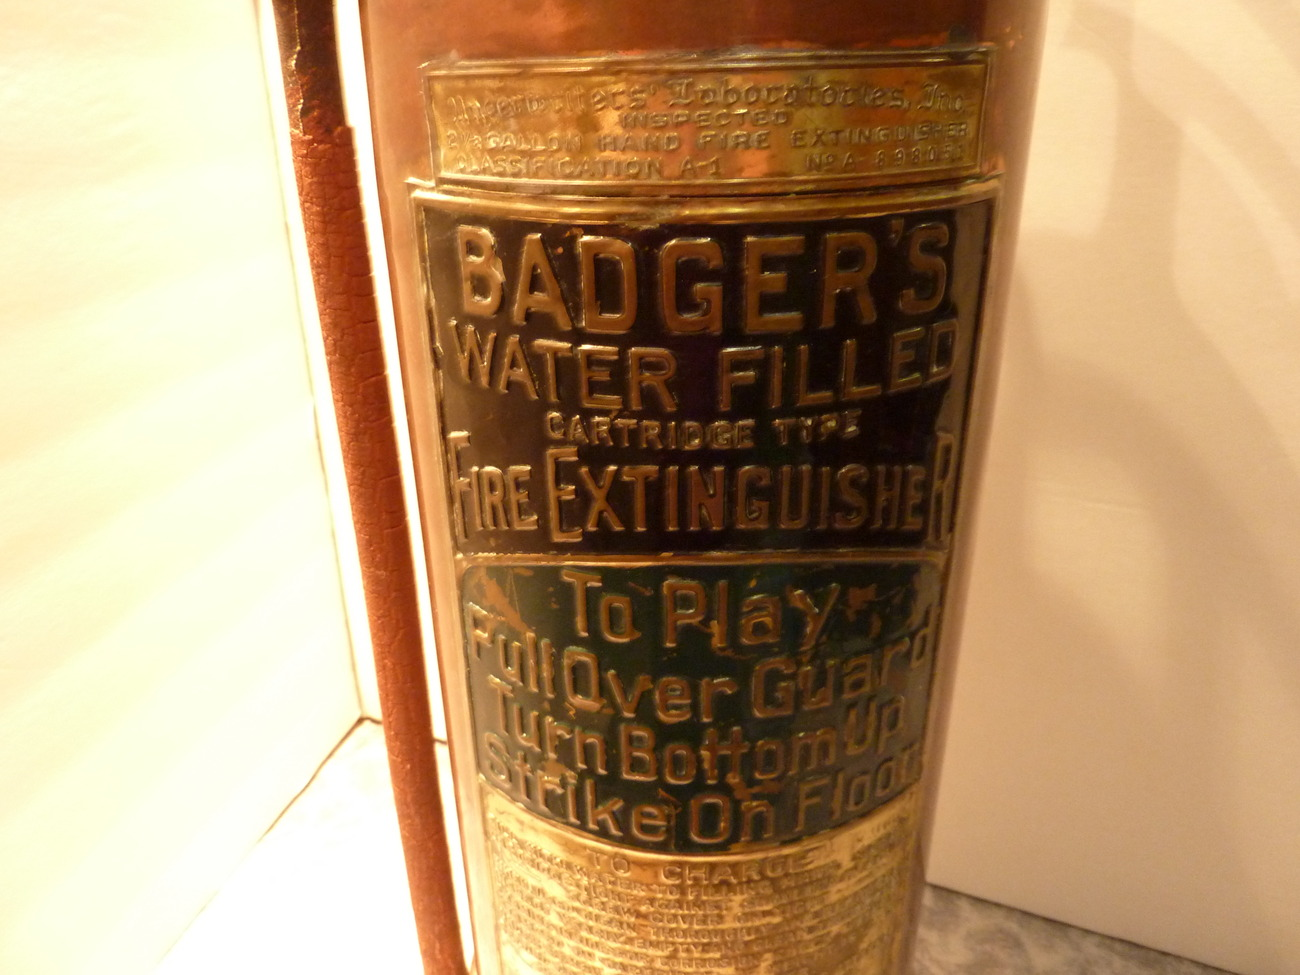 Badgers water filled fire extinguisher